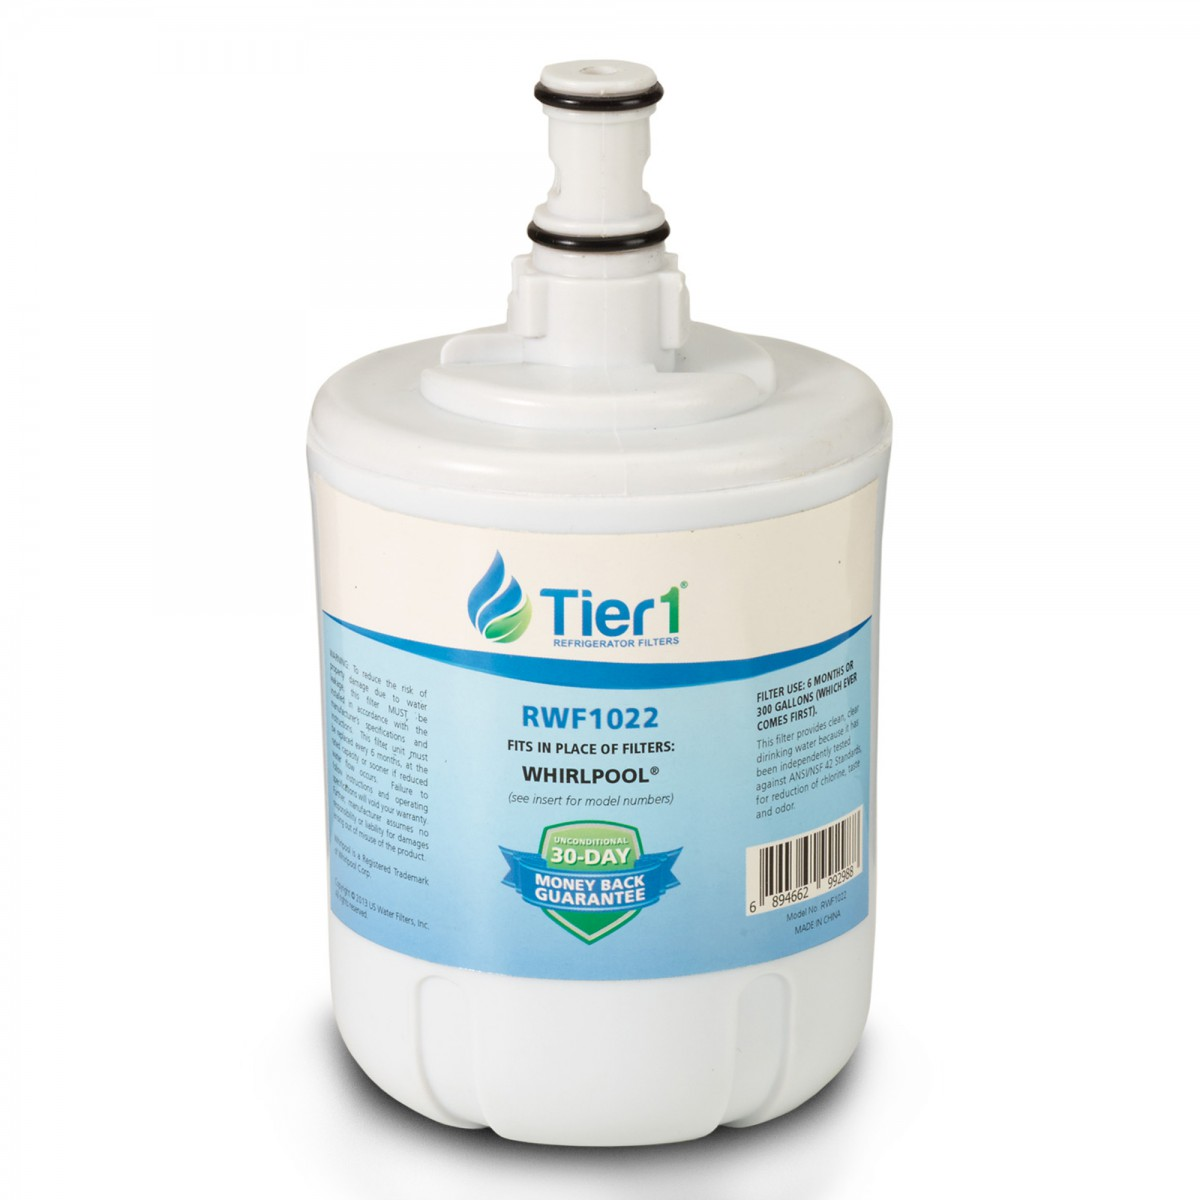 Wfl120v Whirlpool Refrigerator Water Filter Replacement By